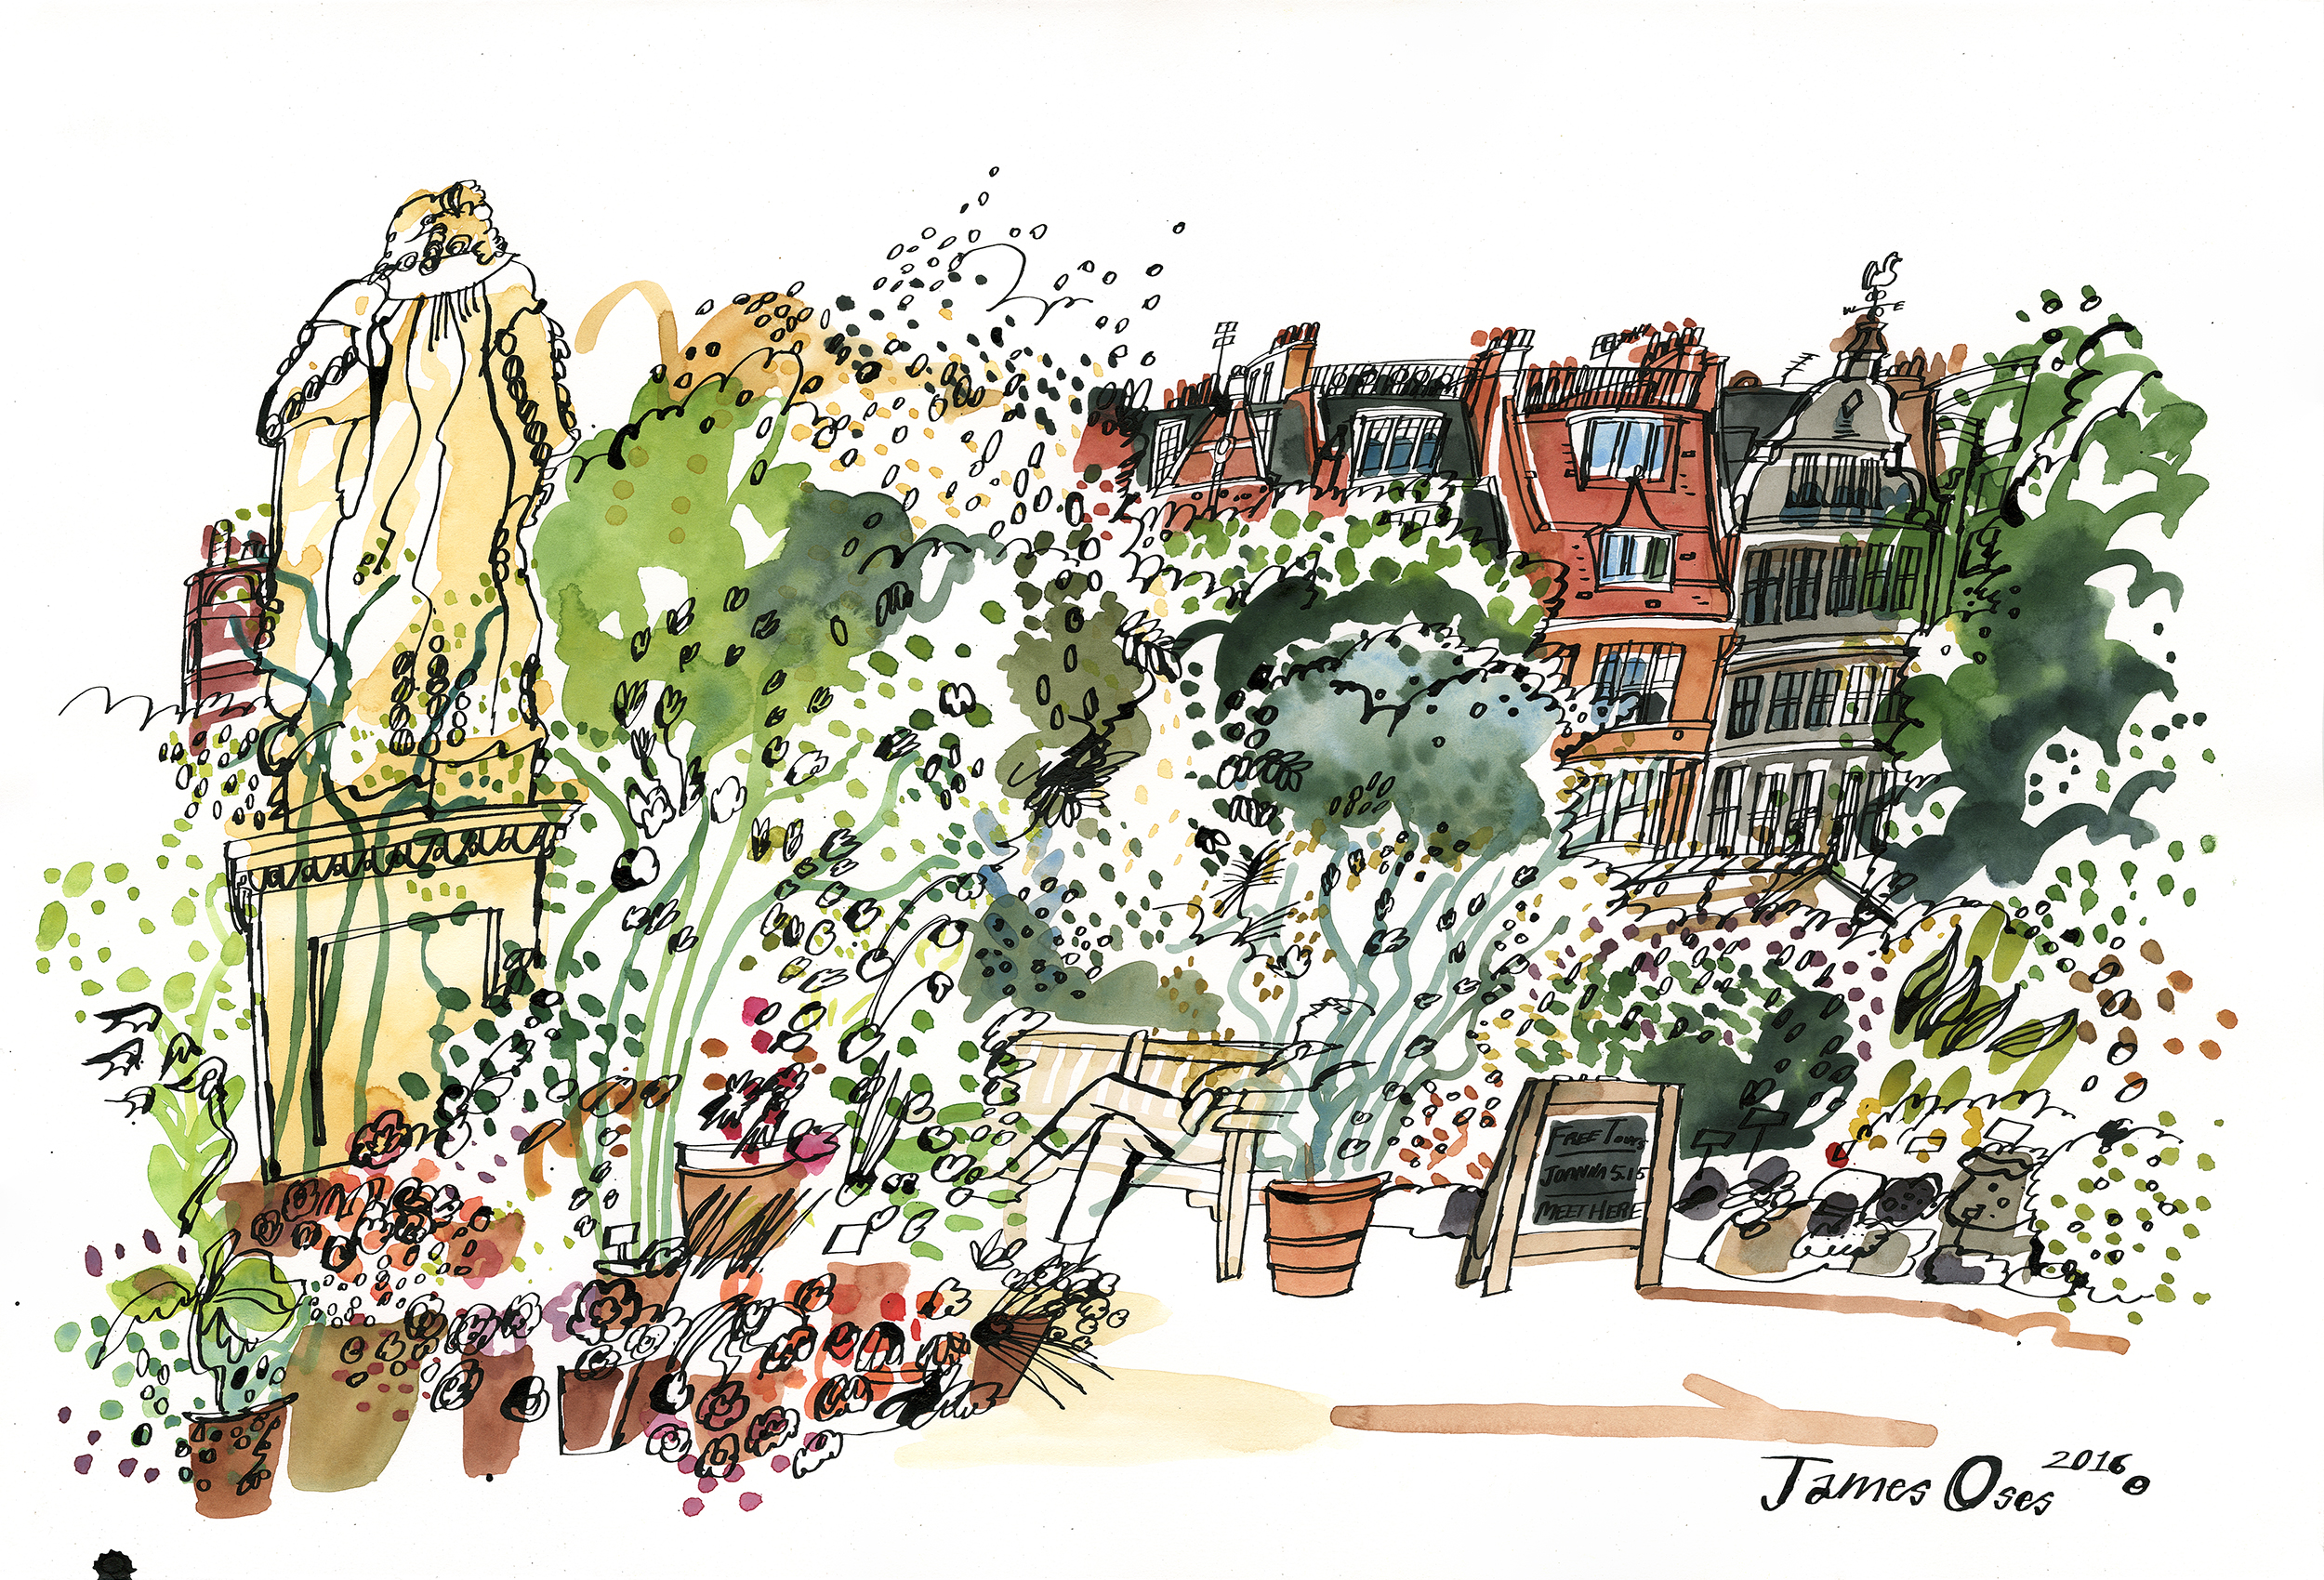 Chelsea Physic Garden - Sloane statue.  A picture I painted on location last year. One of the volunteers at the Garden very kindly bought the original artwork after seeing me drawing by the Sloane statue. A print is available  here .